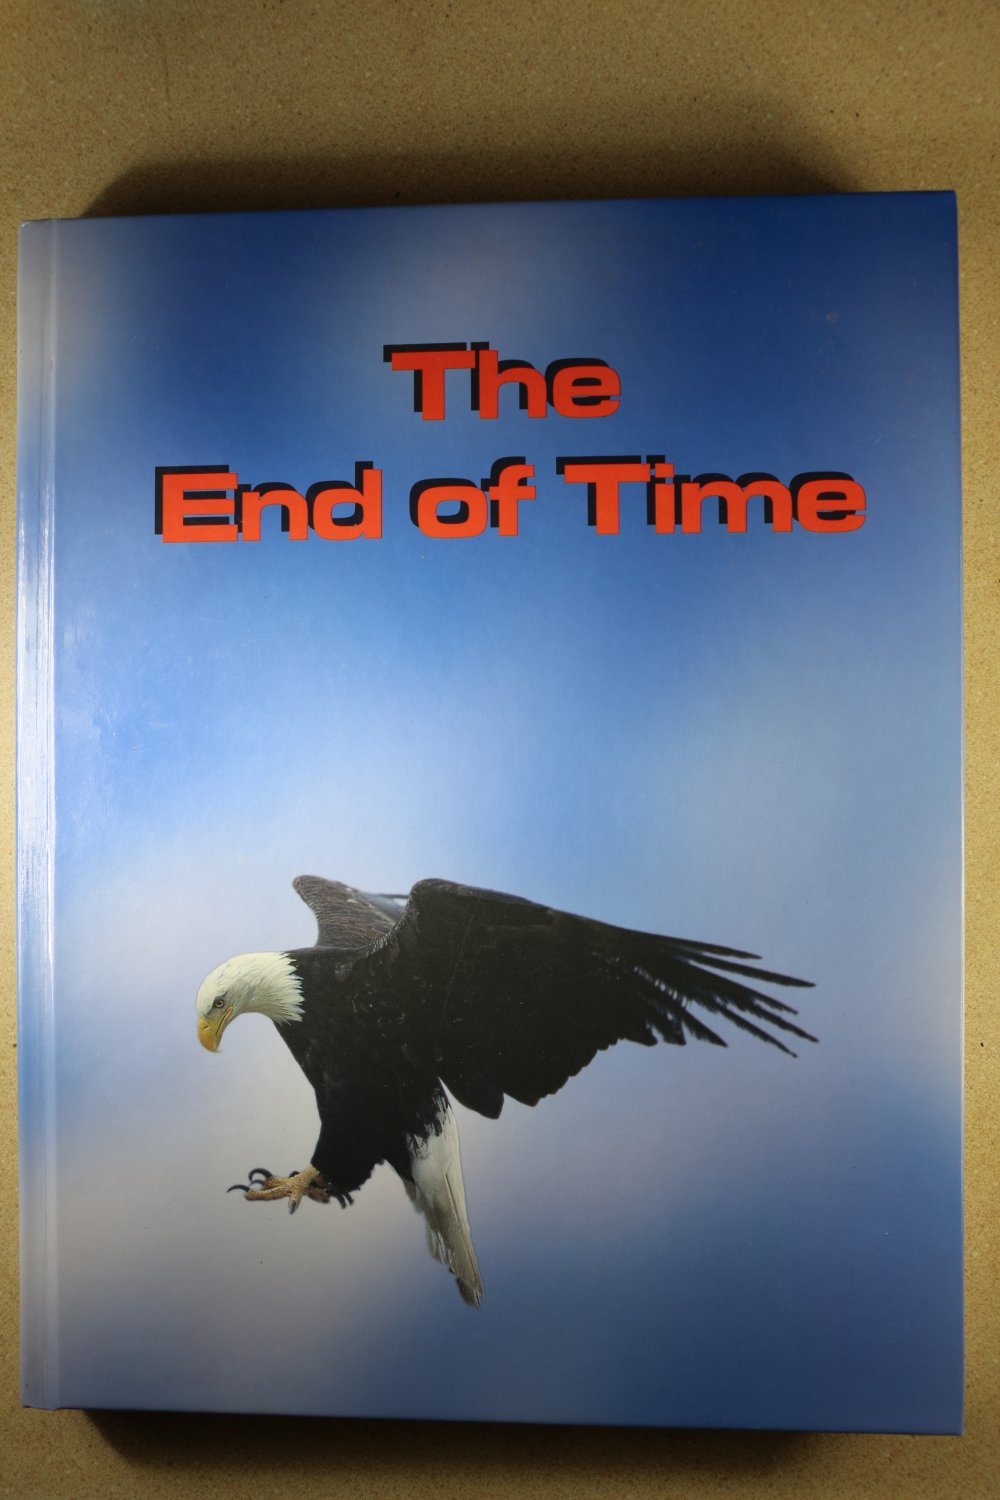 The End of Time - Statements by Ellen G. White on End-time Events